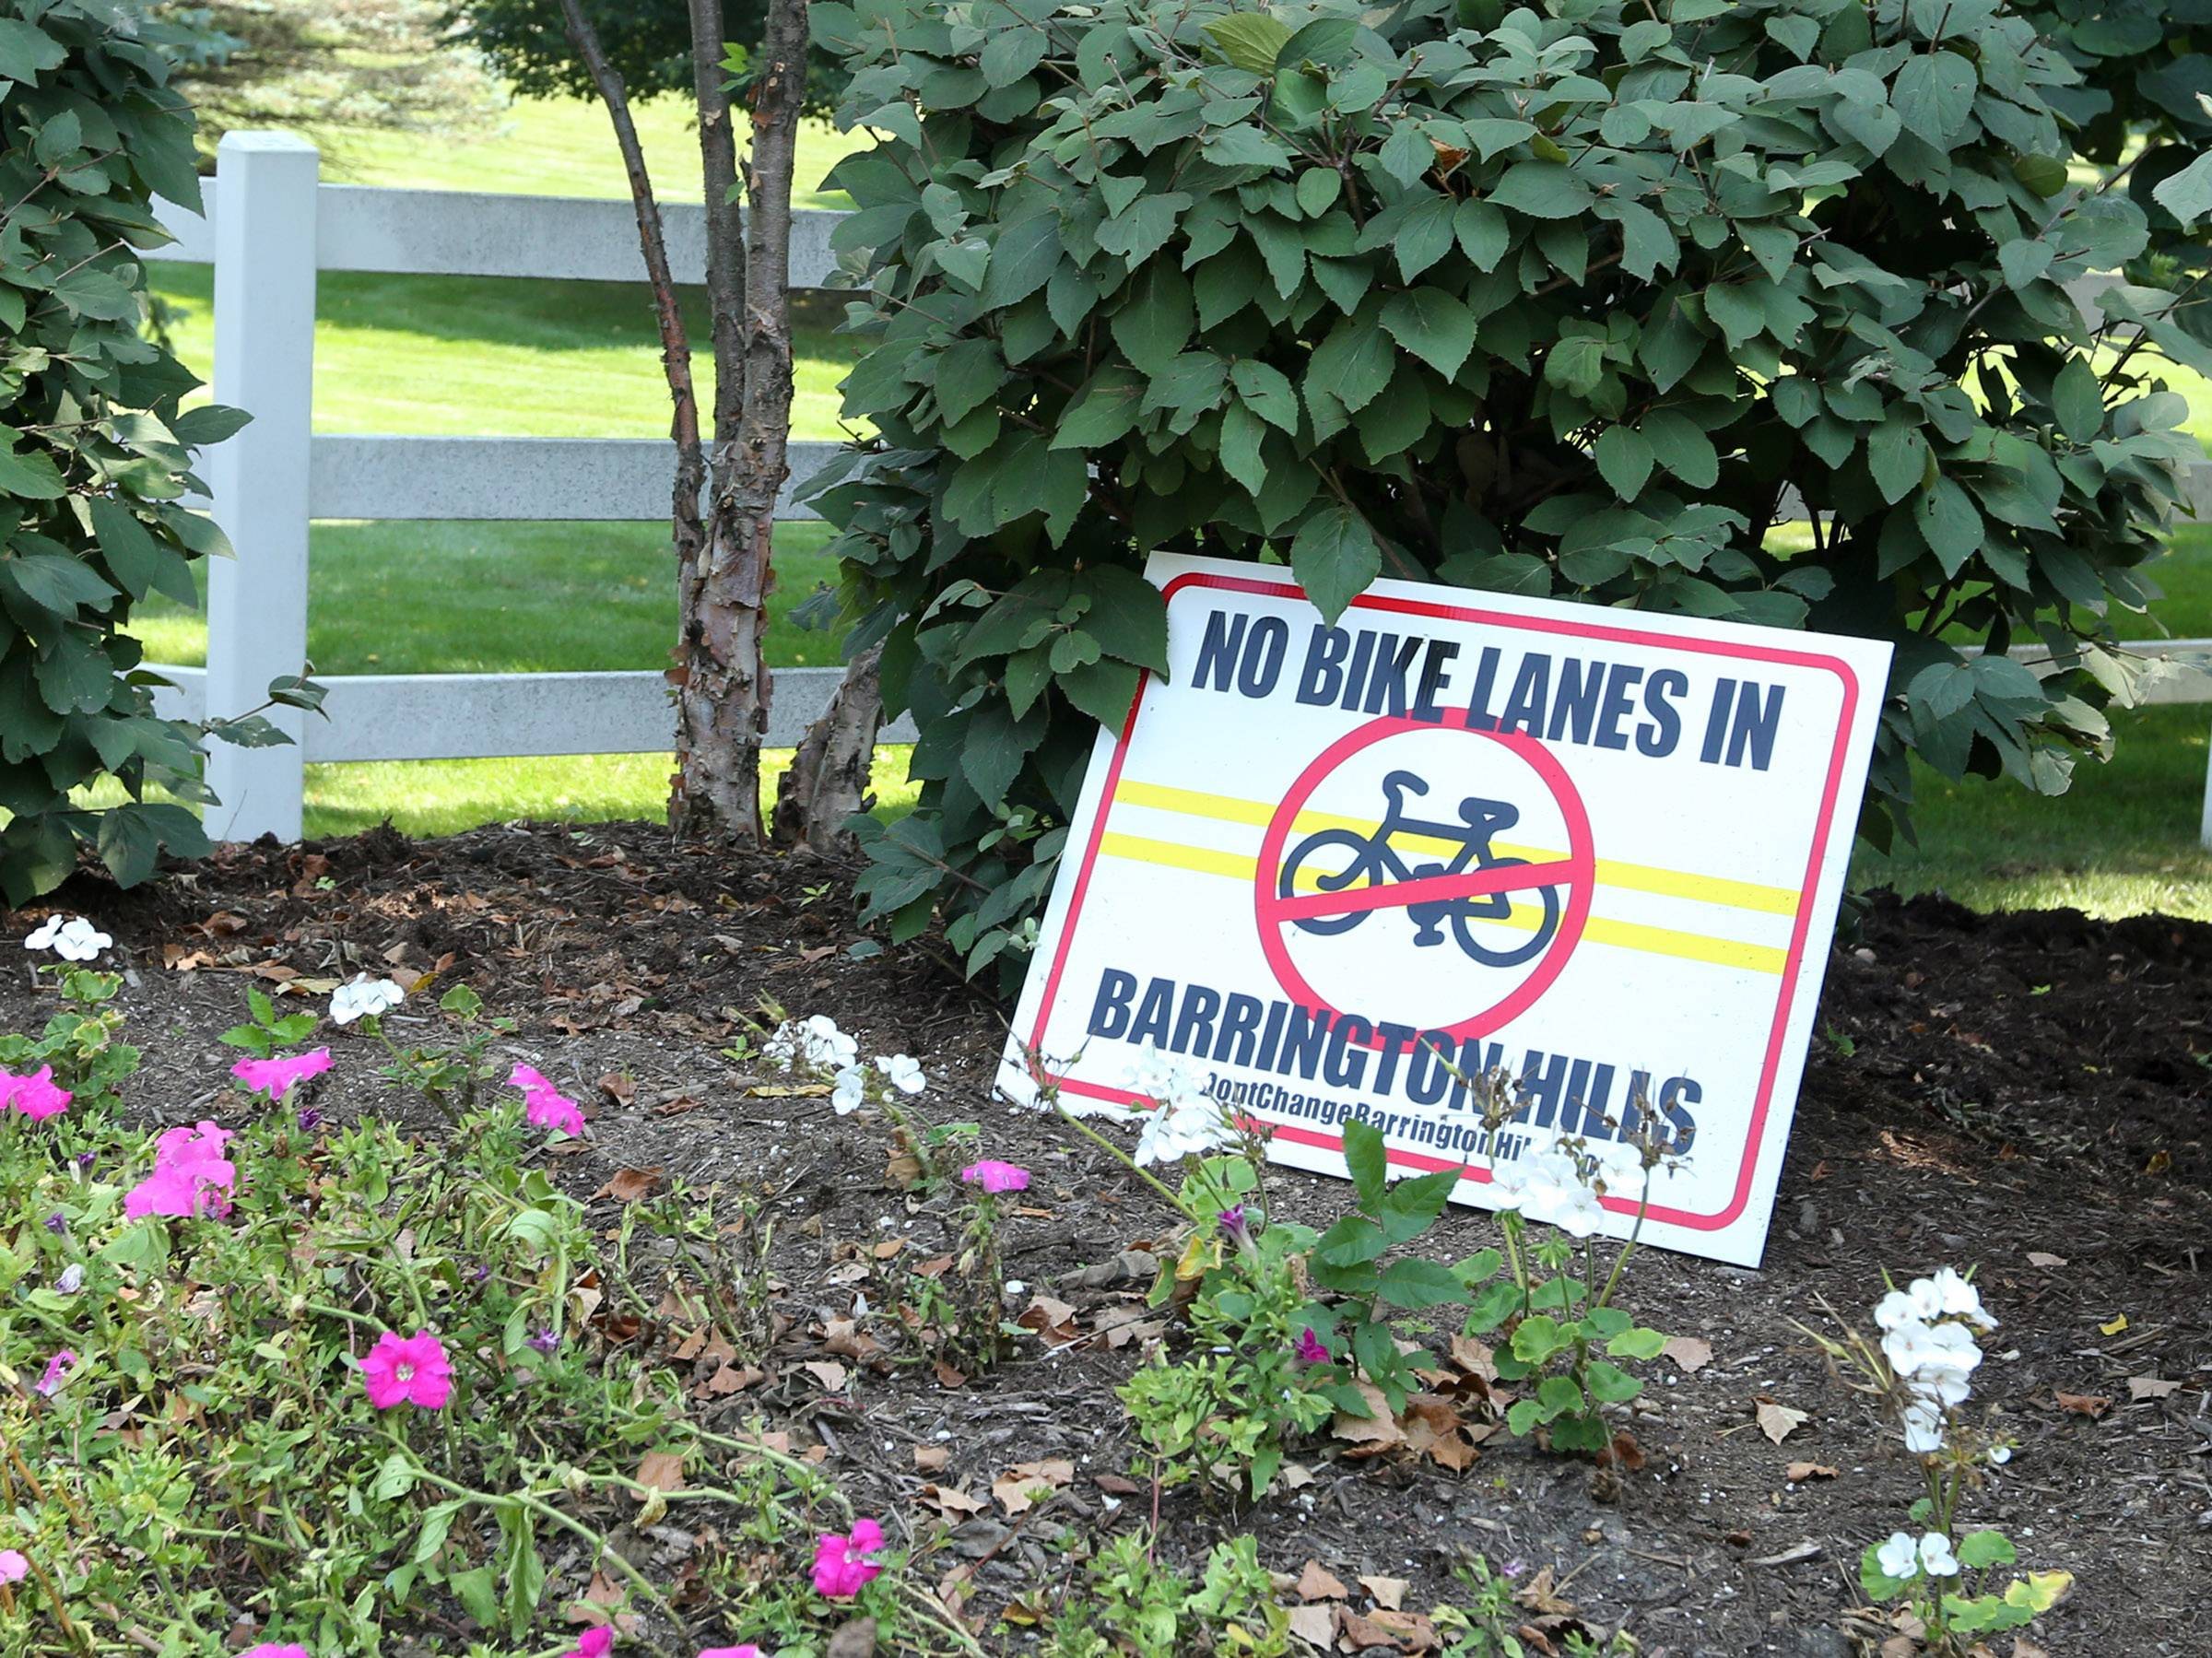 Yard signs popped up in Barrington Hills this summer after reports surfaced that the officials would consider adding bike lanes along a scenic village road.